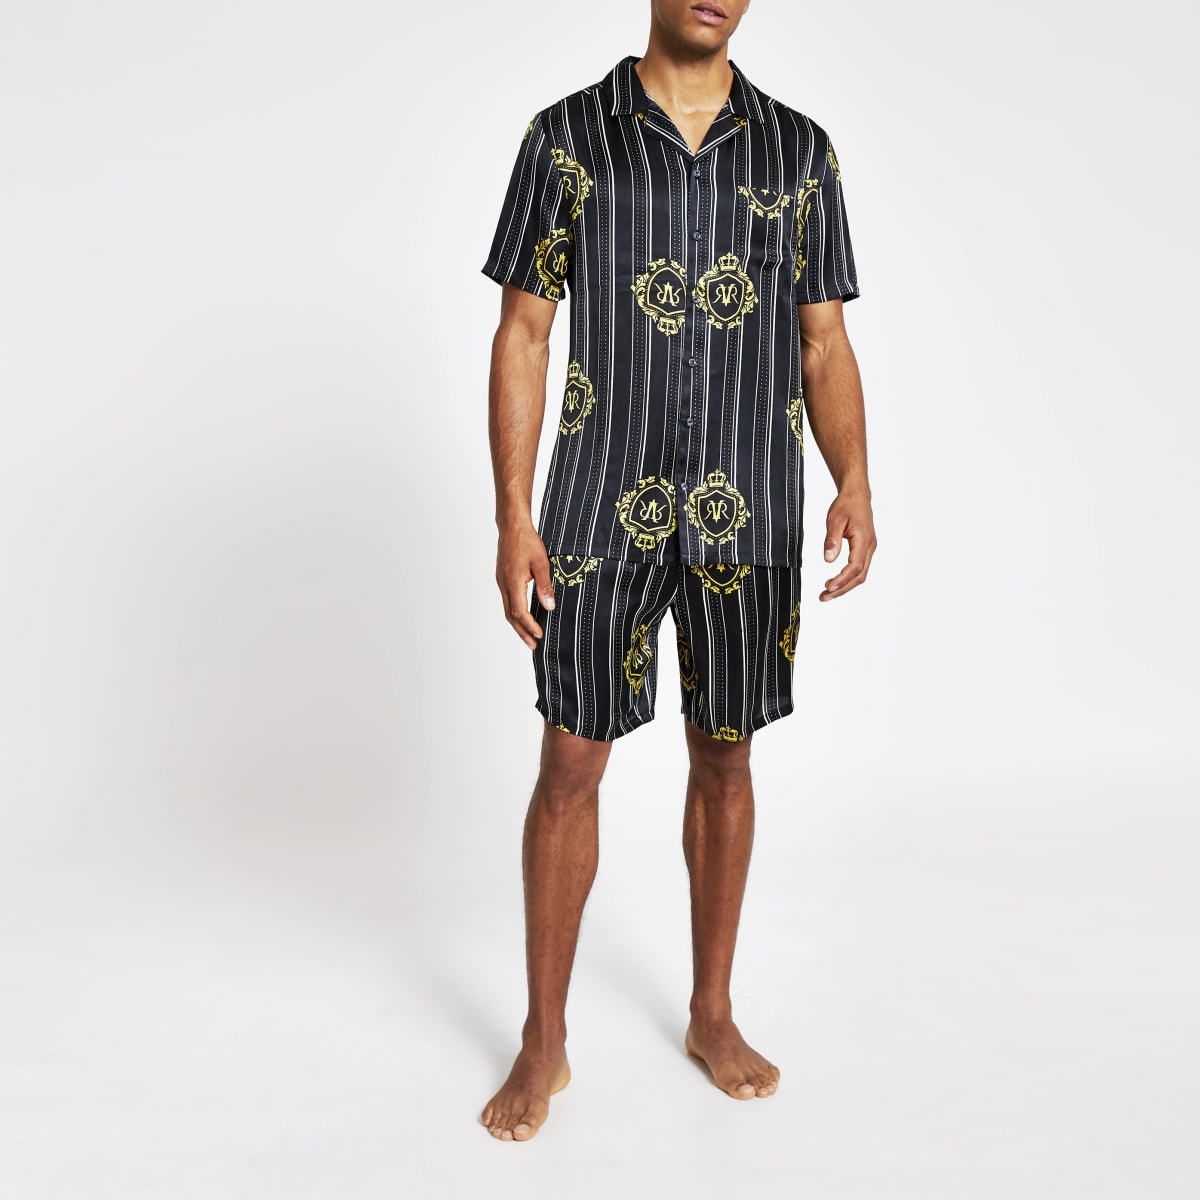 Black RVR printed satin short pyjama set